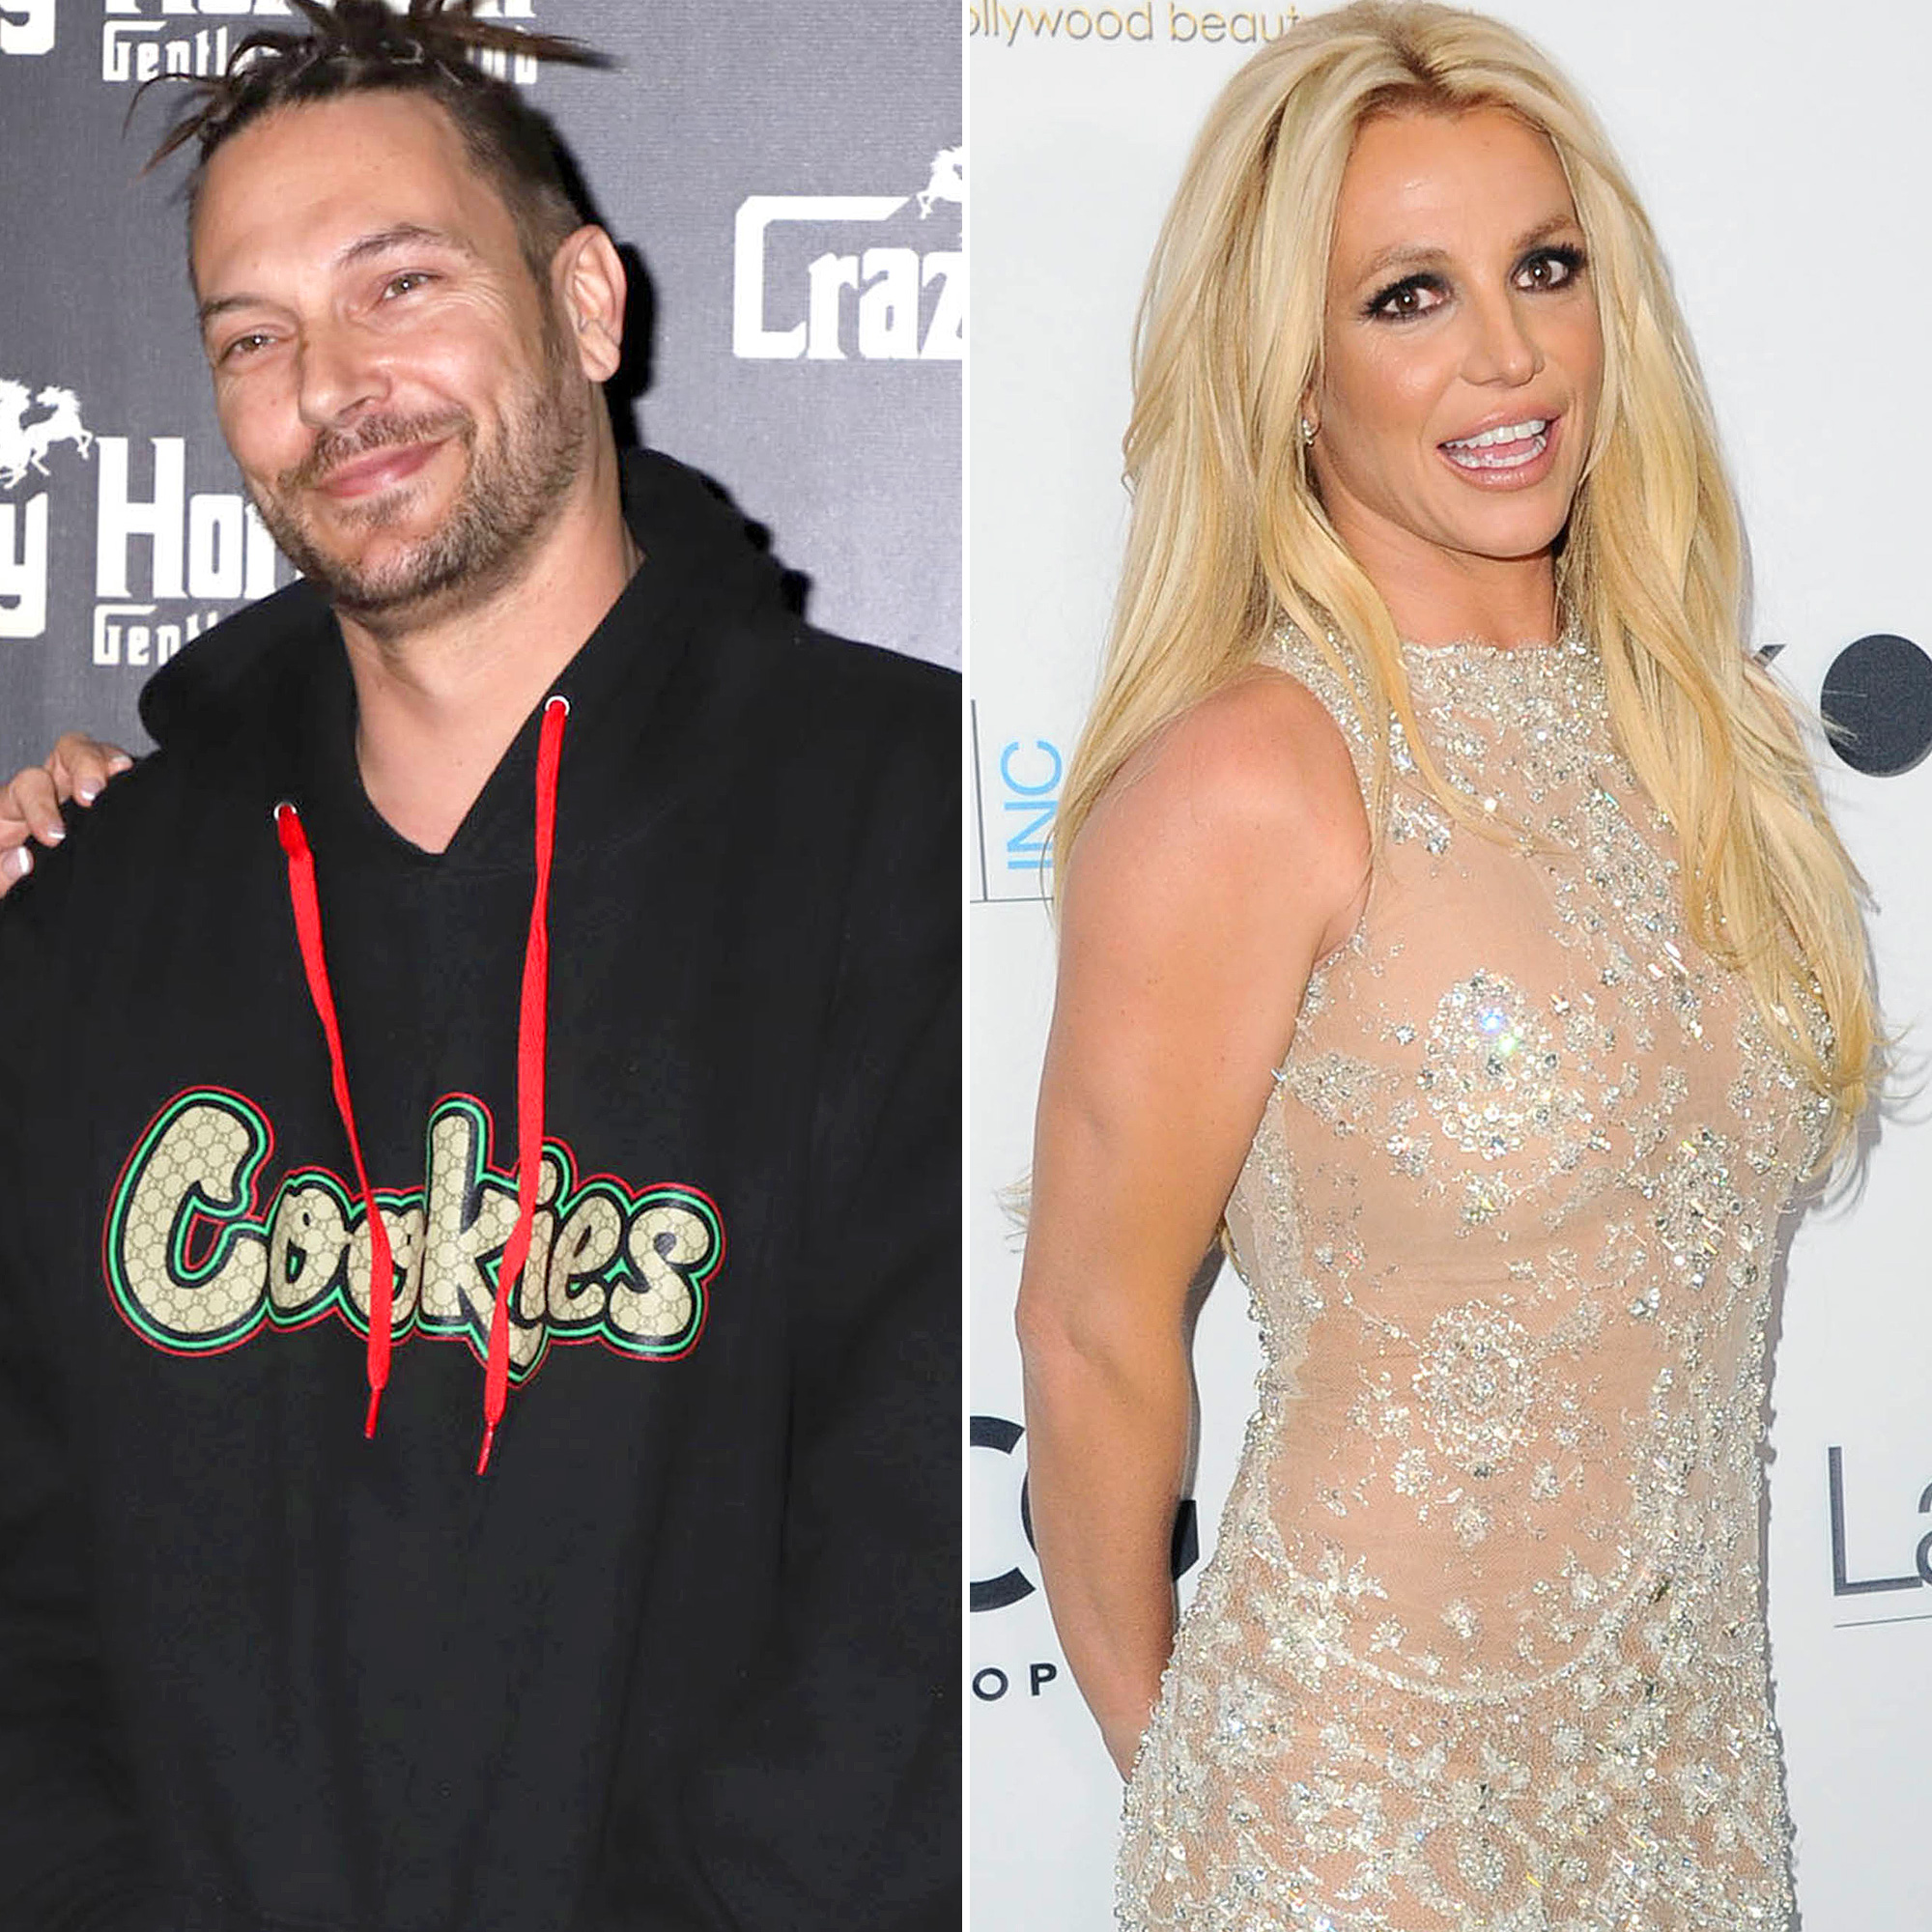 Britney spears richer than youd think - 2019 year